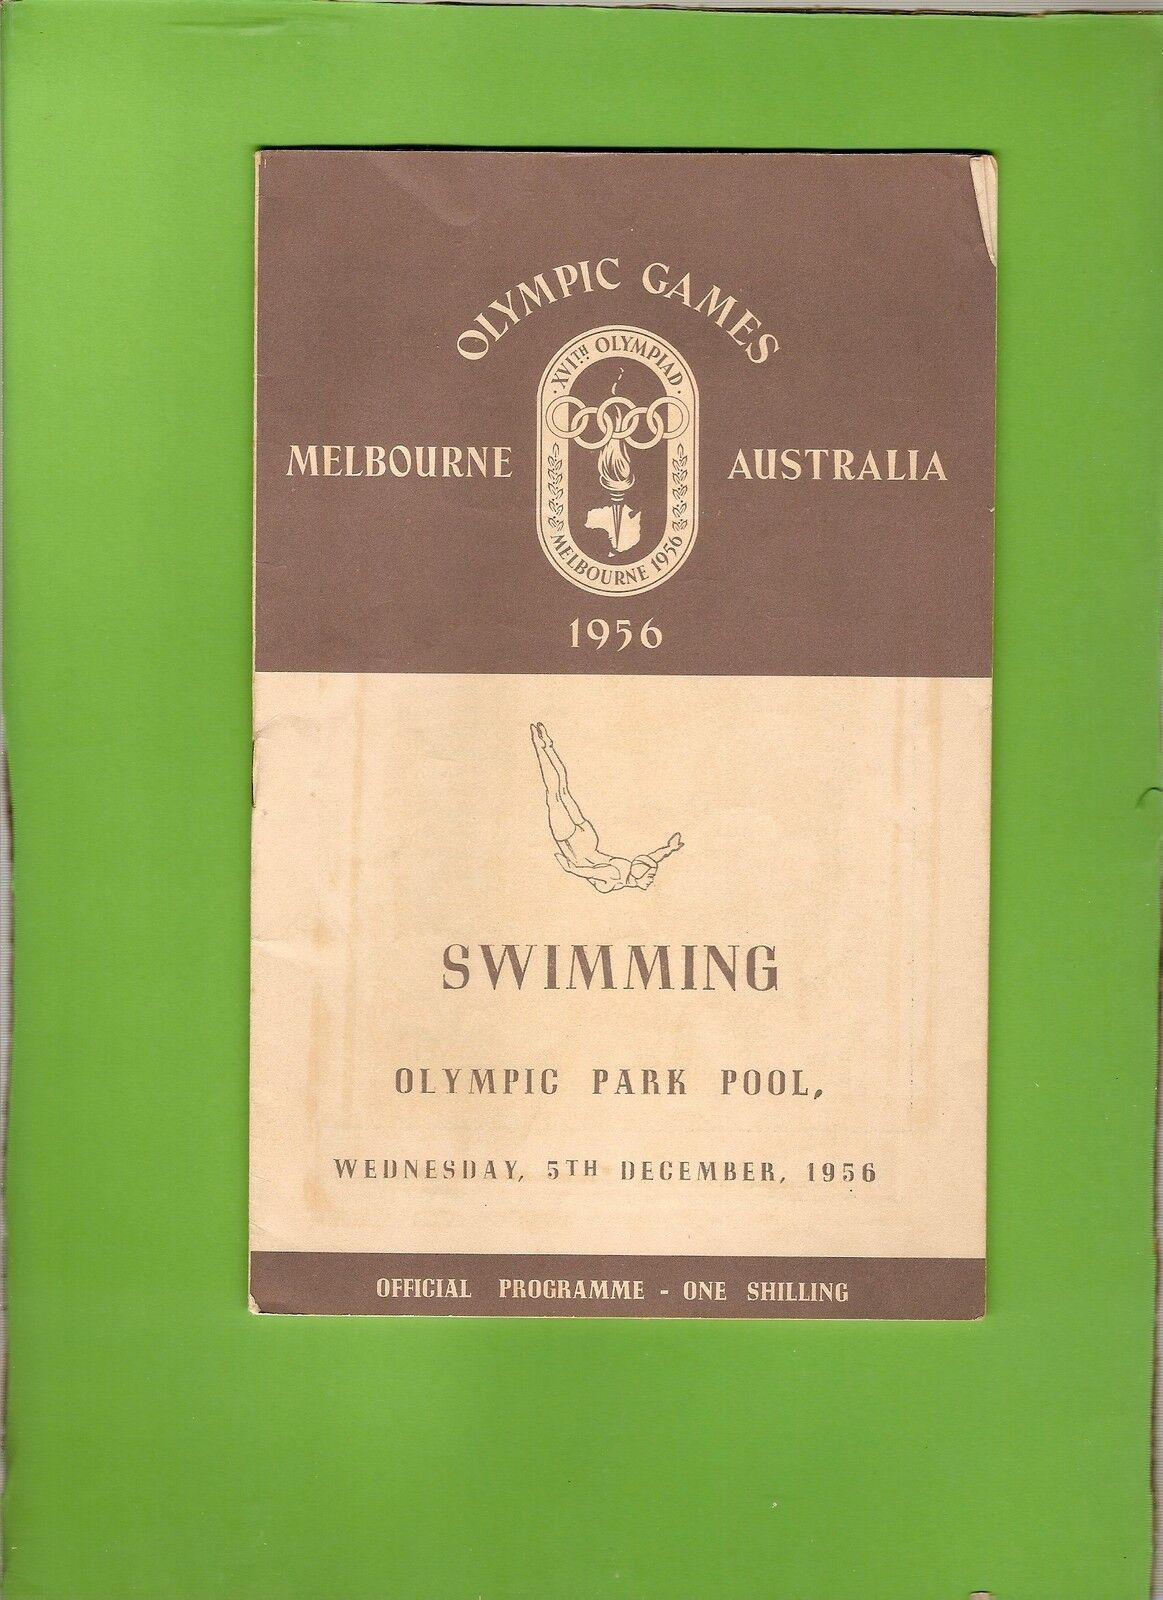 D146. 1956 MELBOURNE OLYMPIC GAMES SWIMMING PROGRAM, 5th December